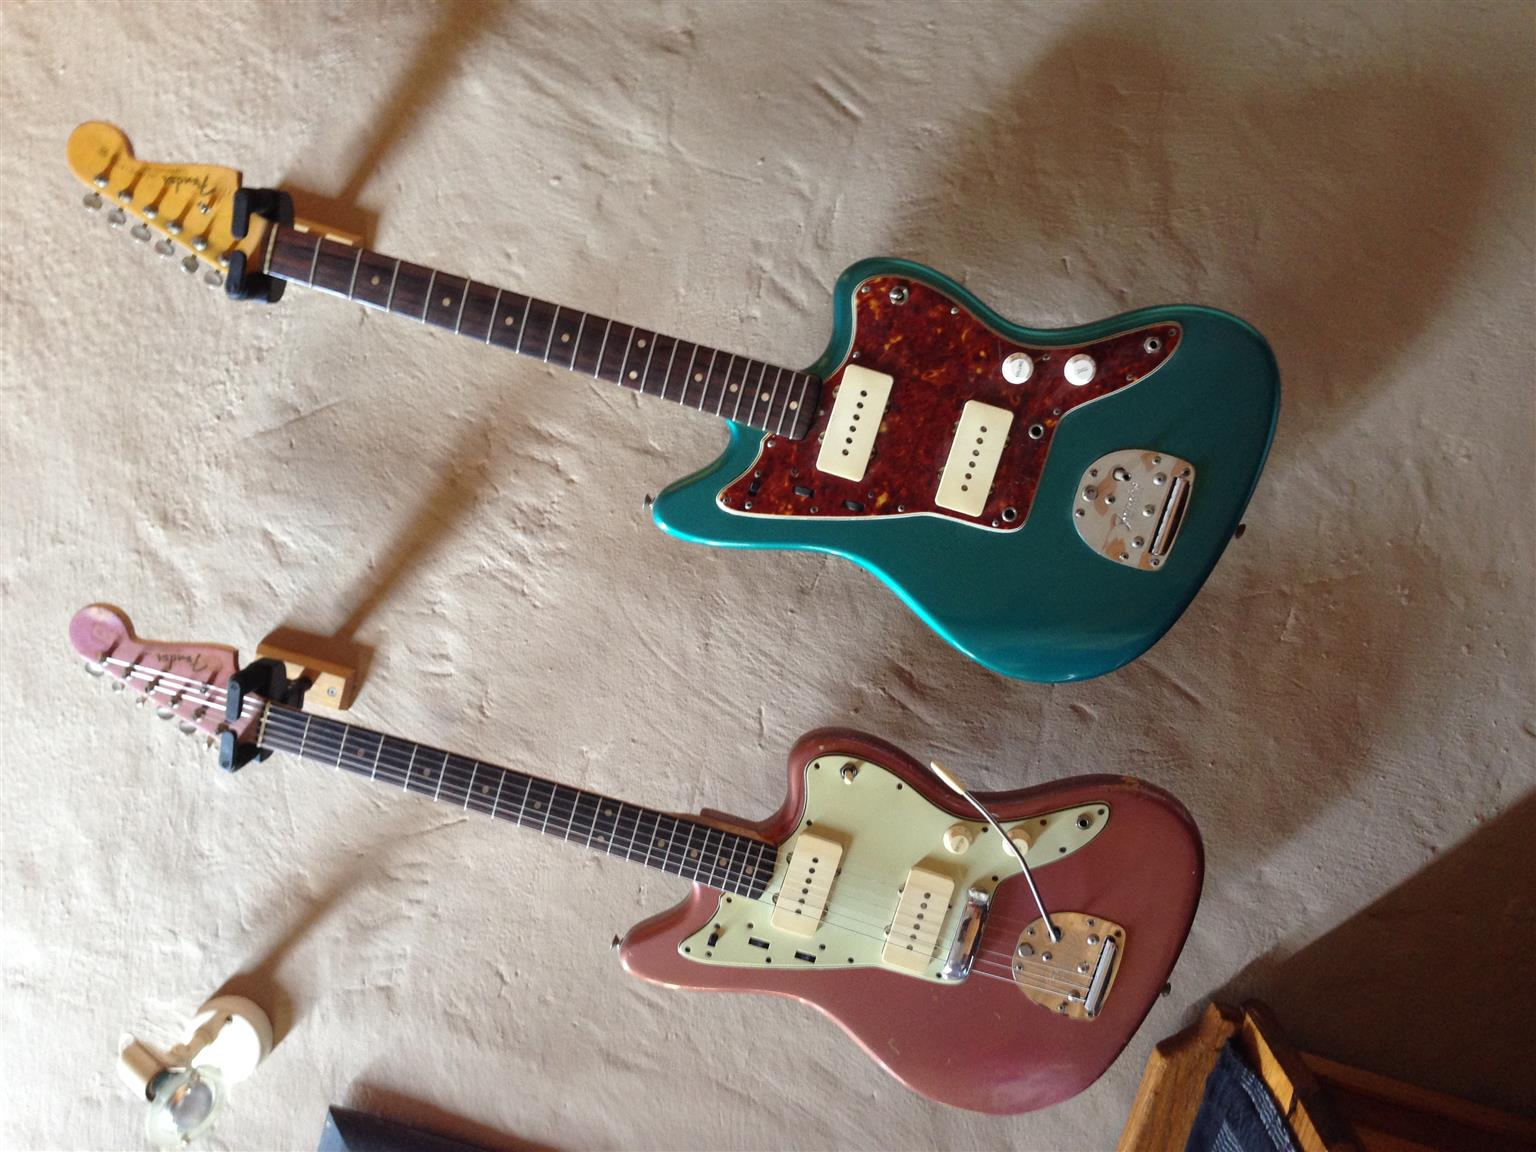 Fender Jazzmaster wanted. Any condition